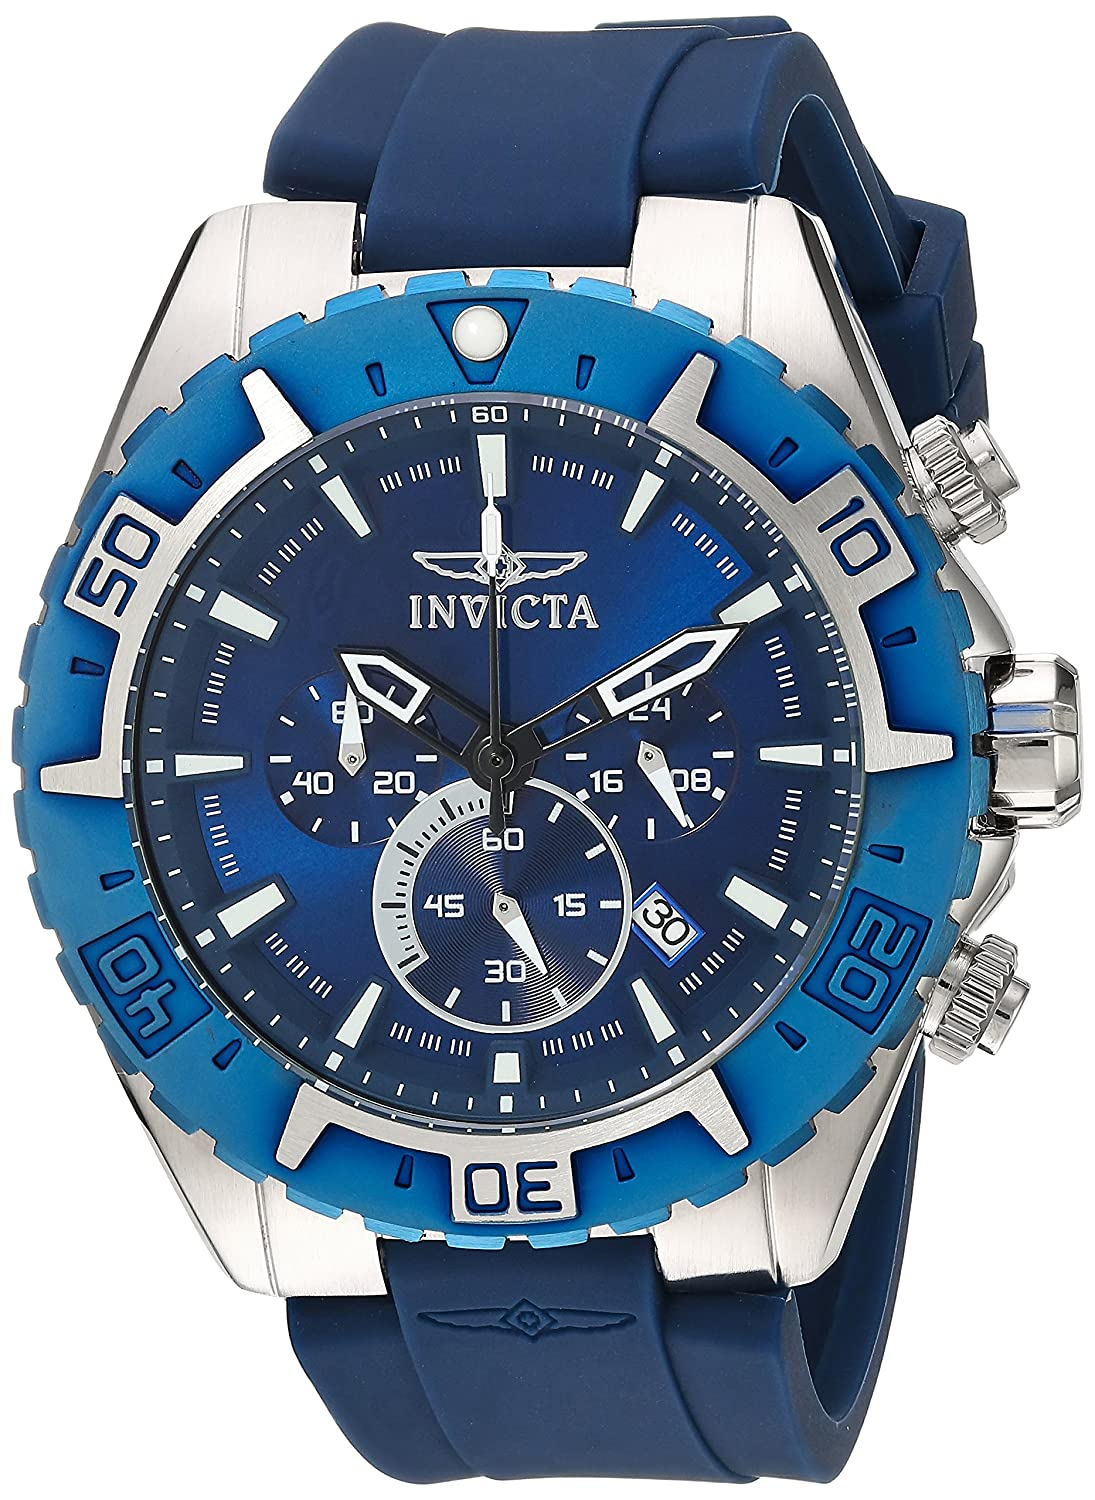 Invicta Men s Aviator Stainless Steel Quartz Watch with Silicone Strap, Blue, 26 Model 22522